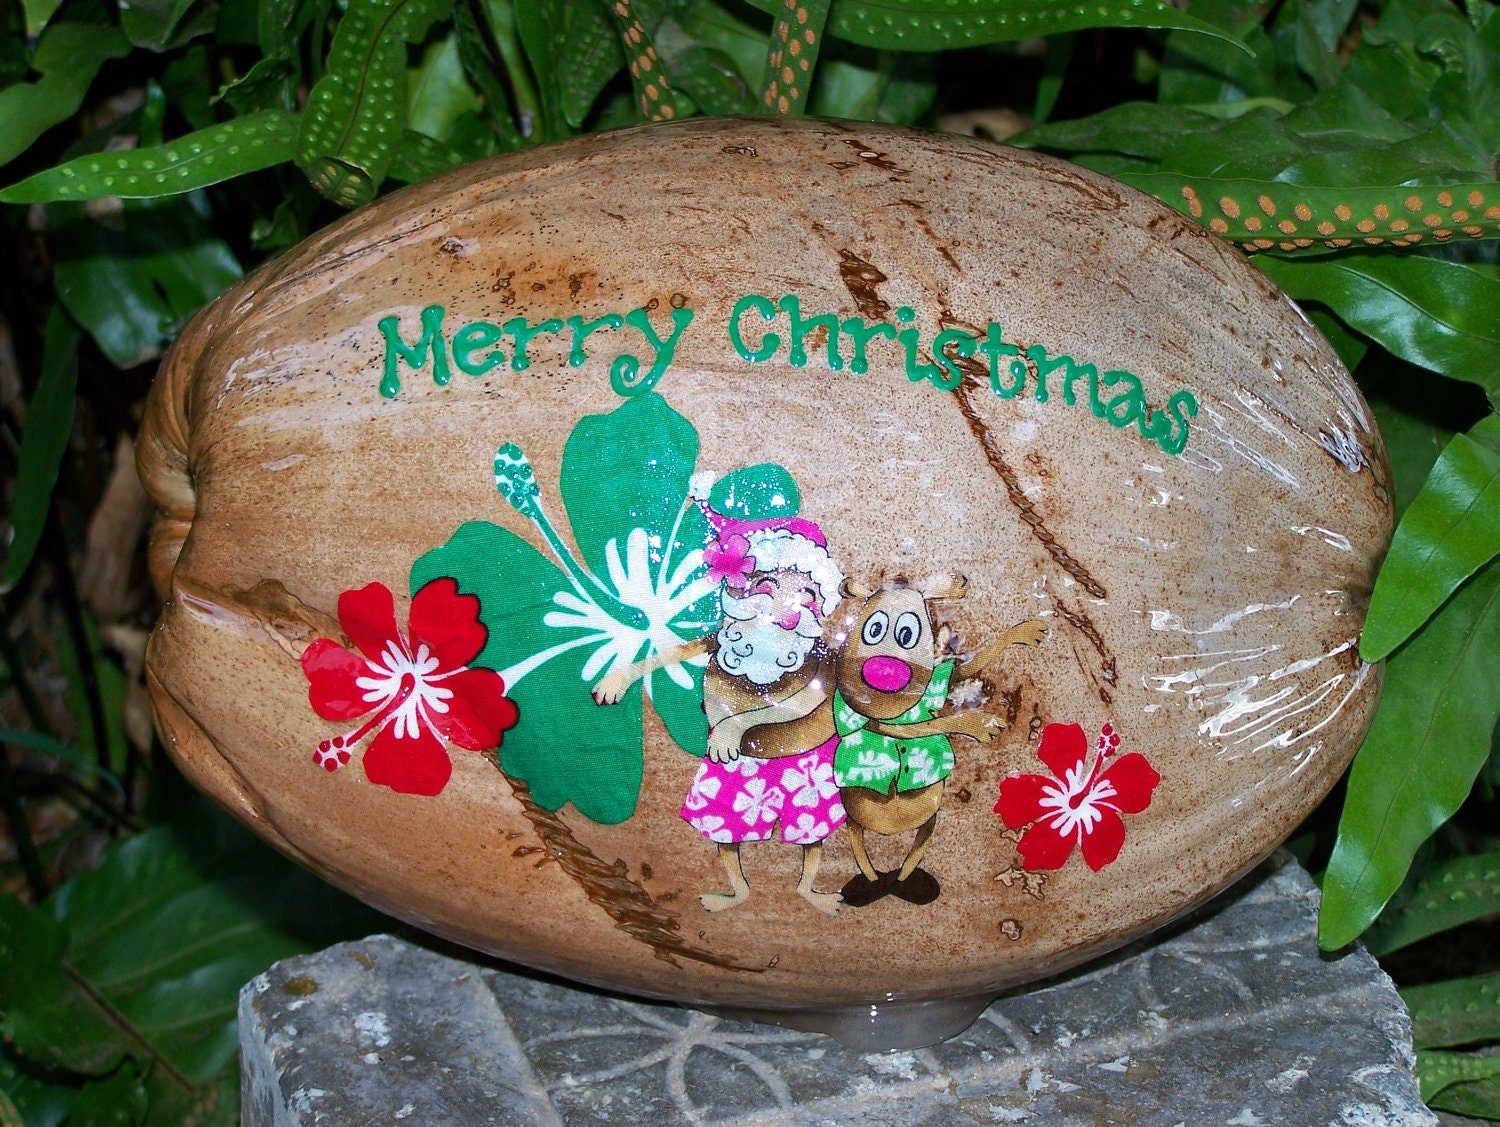 Christmas In Hawaii Decorations.Mele Kalikimaka 1950s Christmas Goes Tropical The